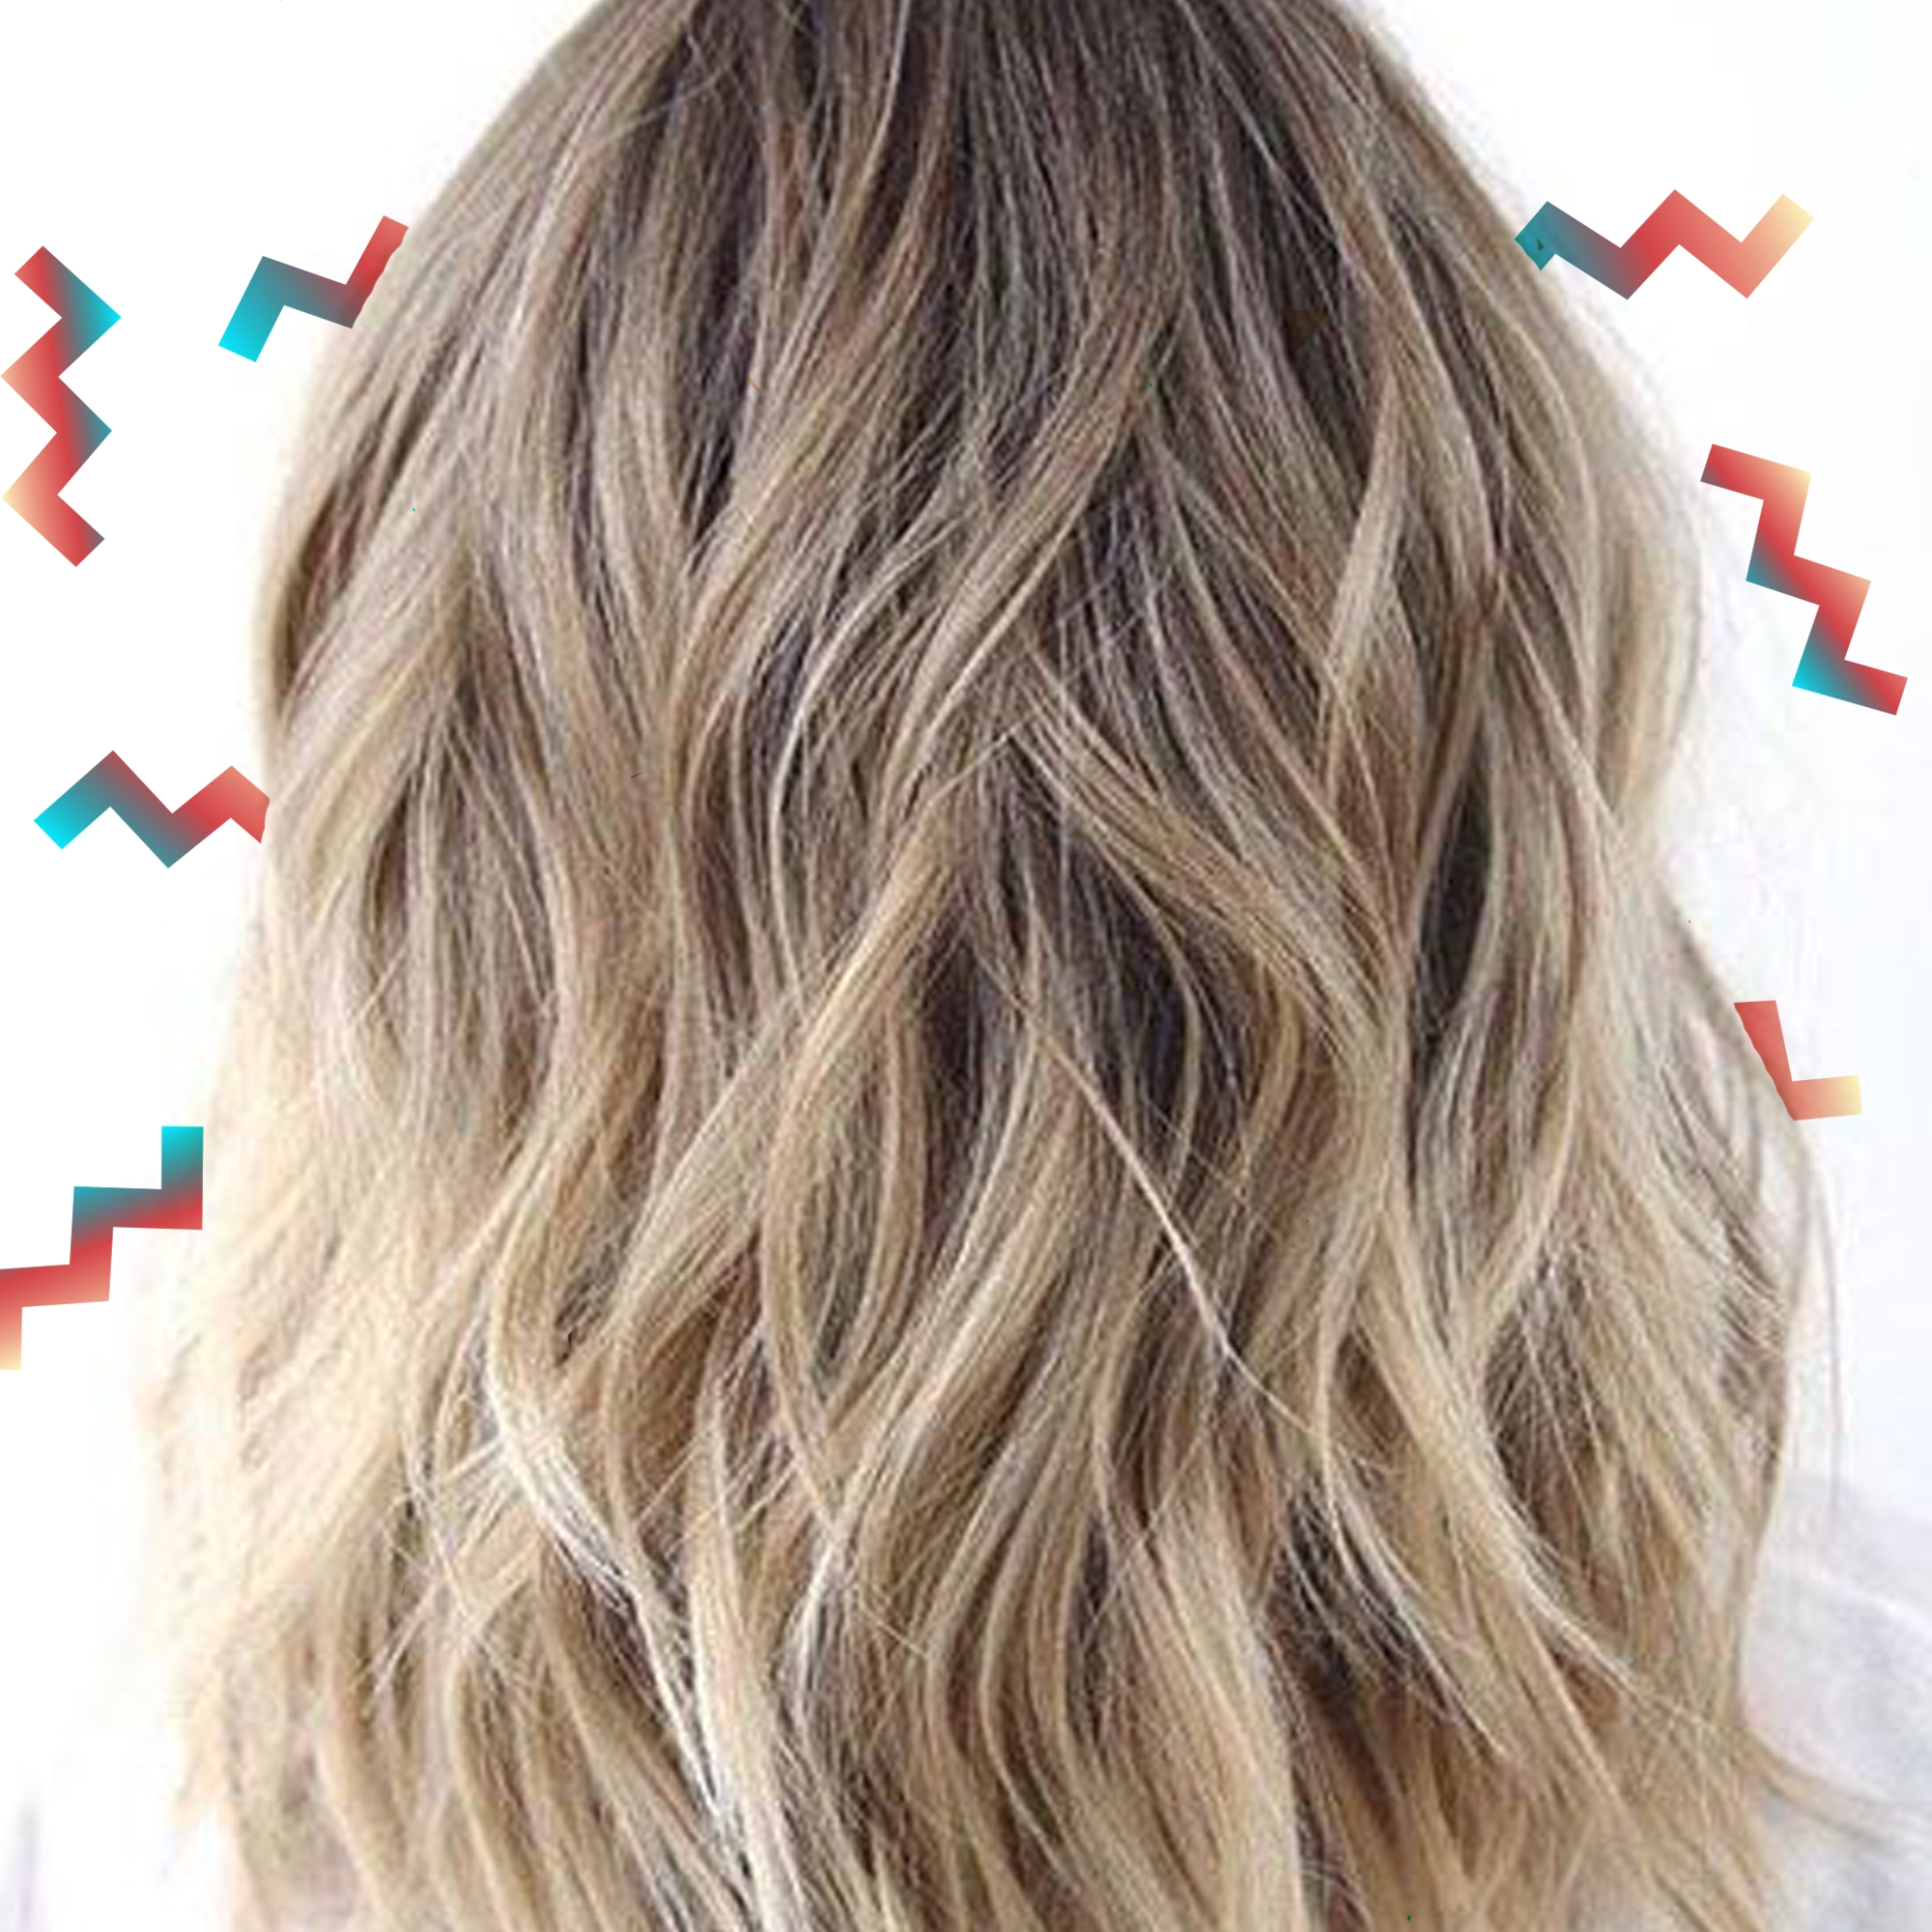 Hair Coloring Techniques – Color Trends New Terminology For Most Recently Released Icy Highlights And Loose Curls Blonde Hairstyles (View 9 of 20)